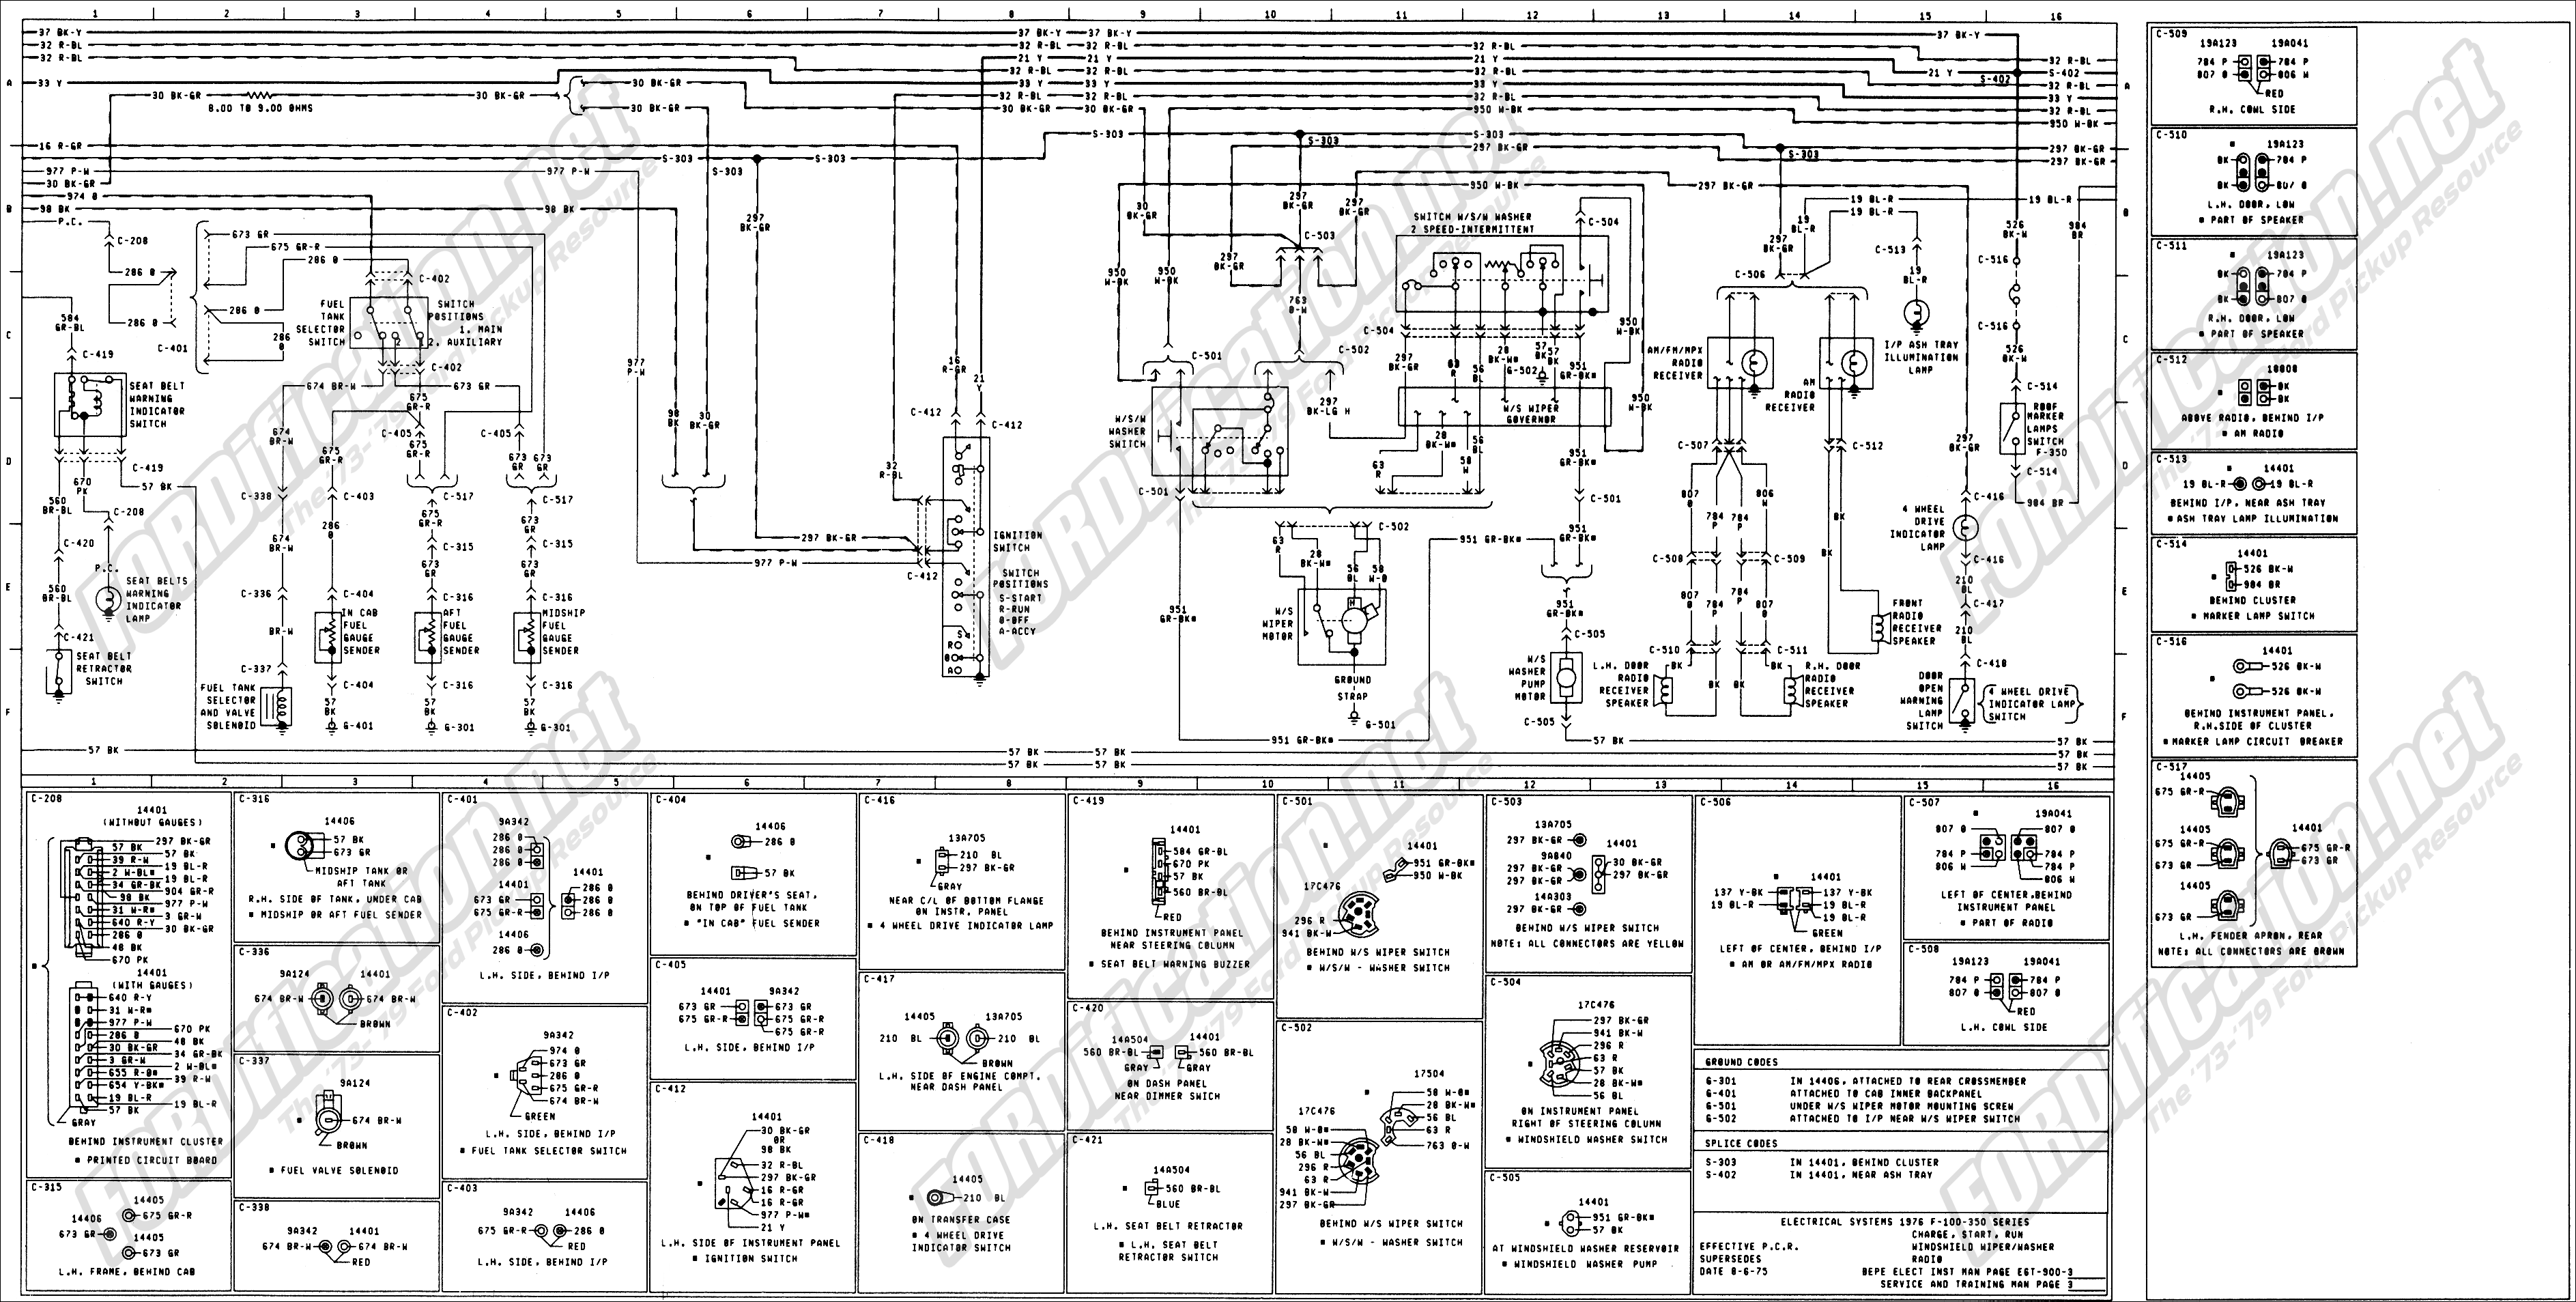 2009 F250 Wiring Diagram Simple Guide About 2007 Ford Focus Pdf F 350 Starting Know U2022 Rh Benjdesigns Co